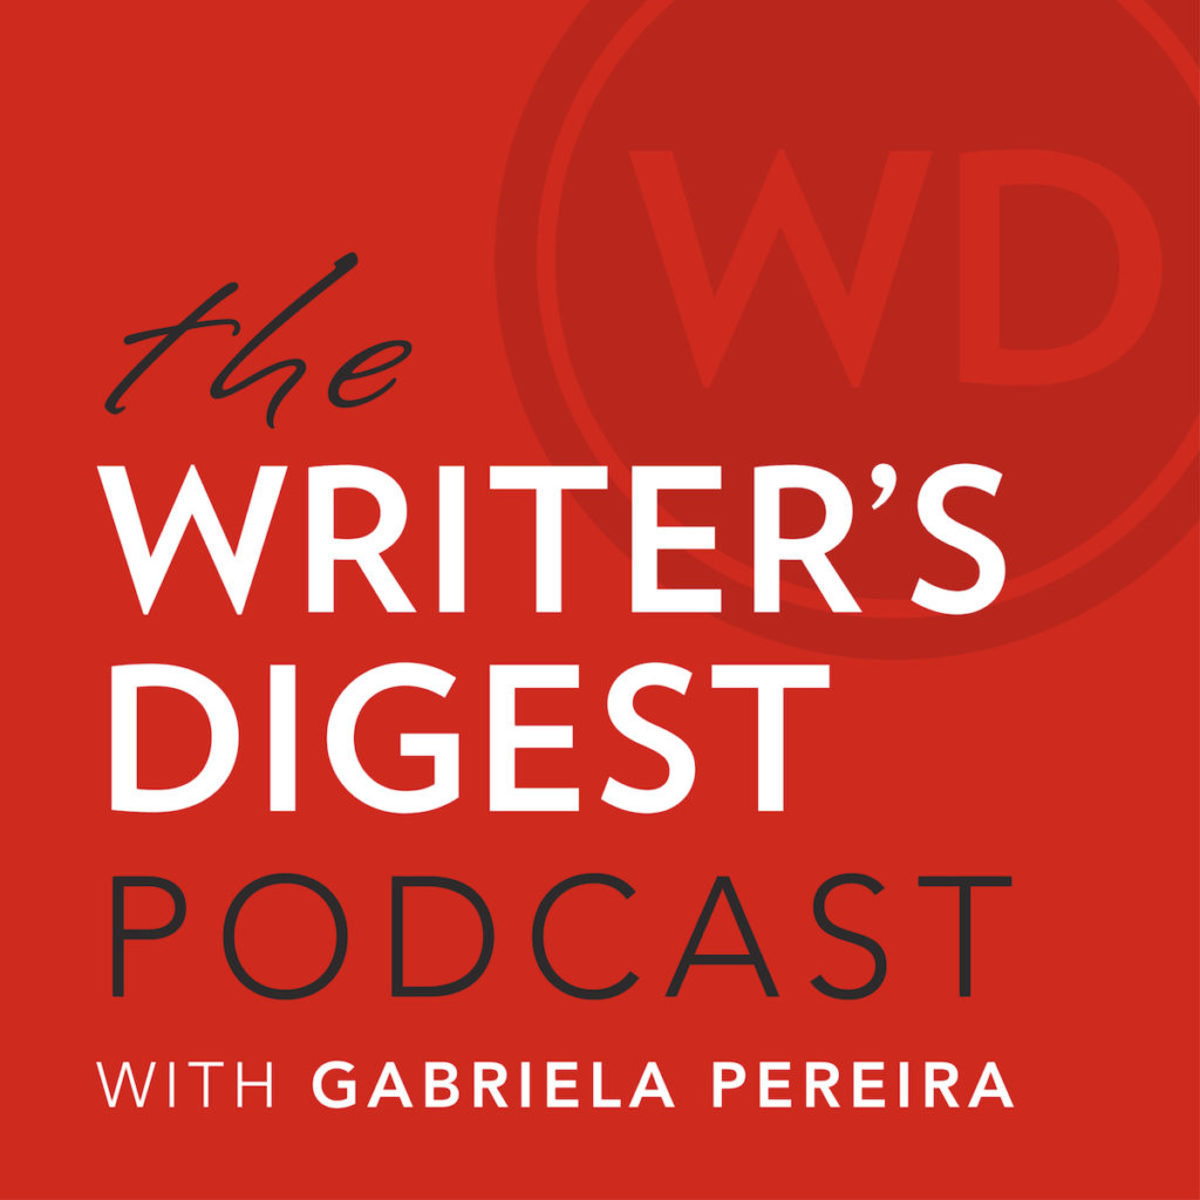 [Tune into Jeff and Ann Vandermeer's interview on the Writer's Digest Podcast!]